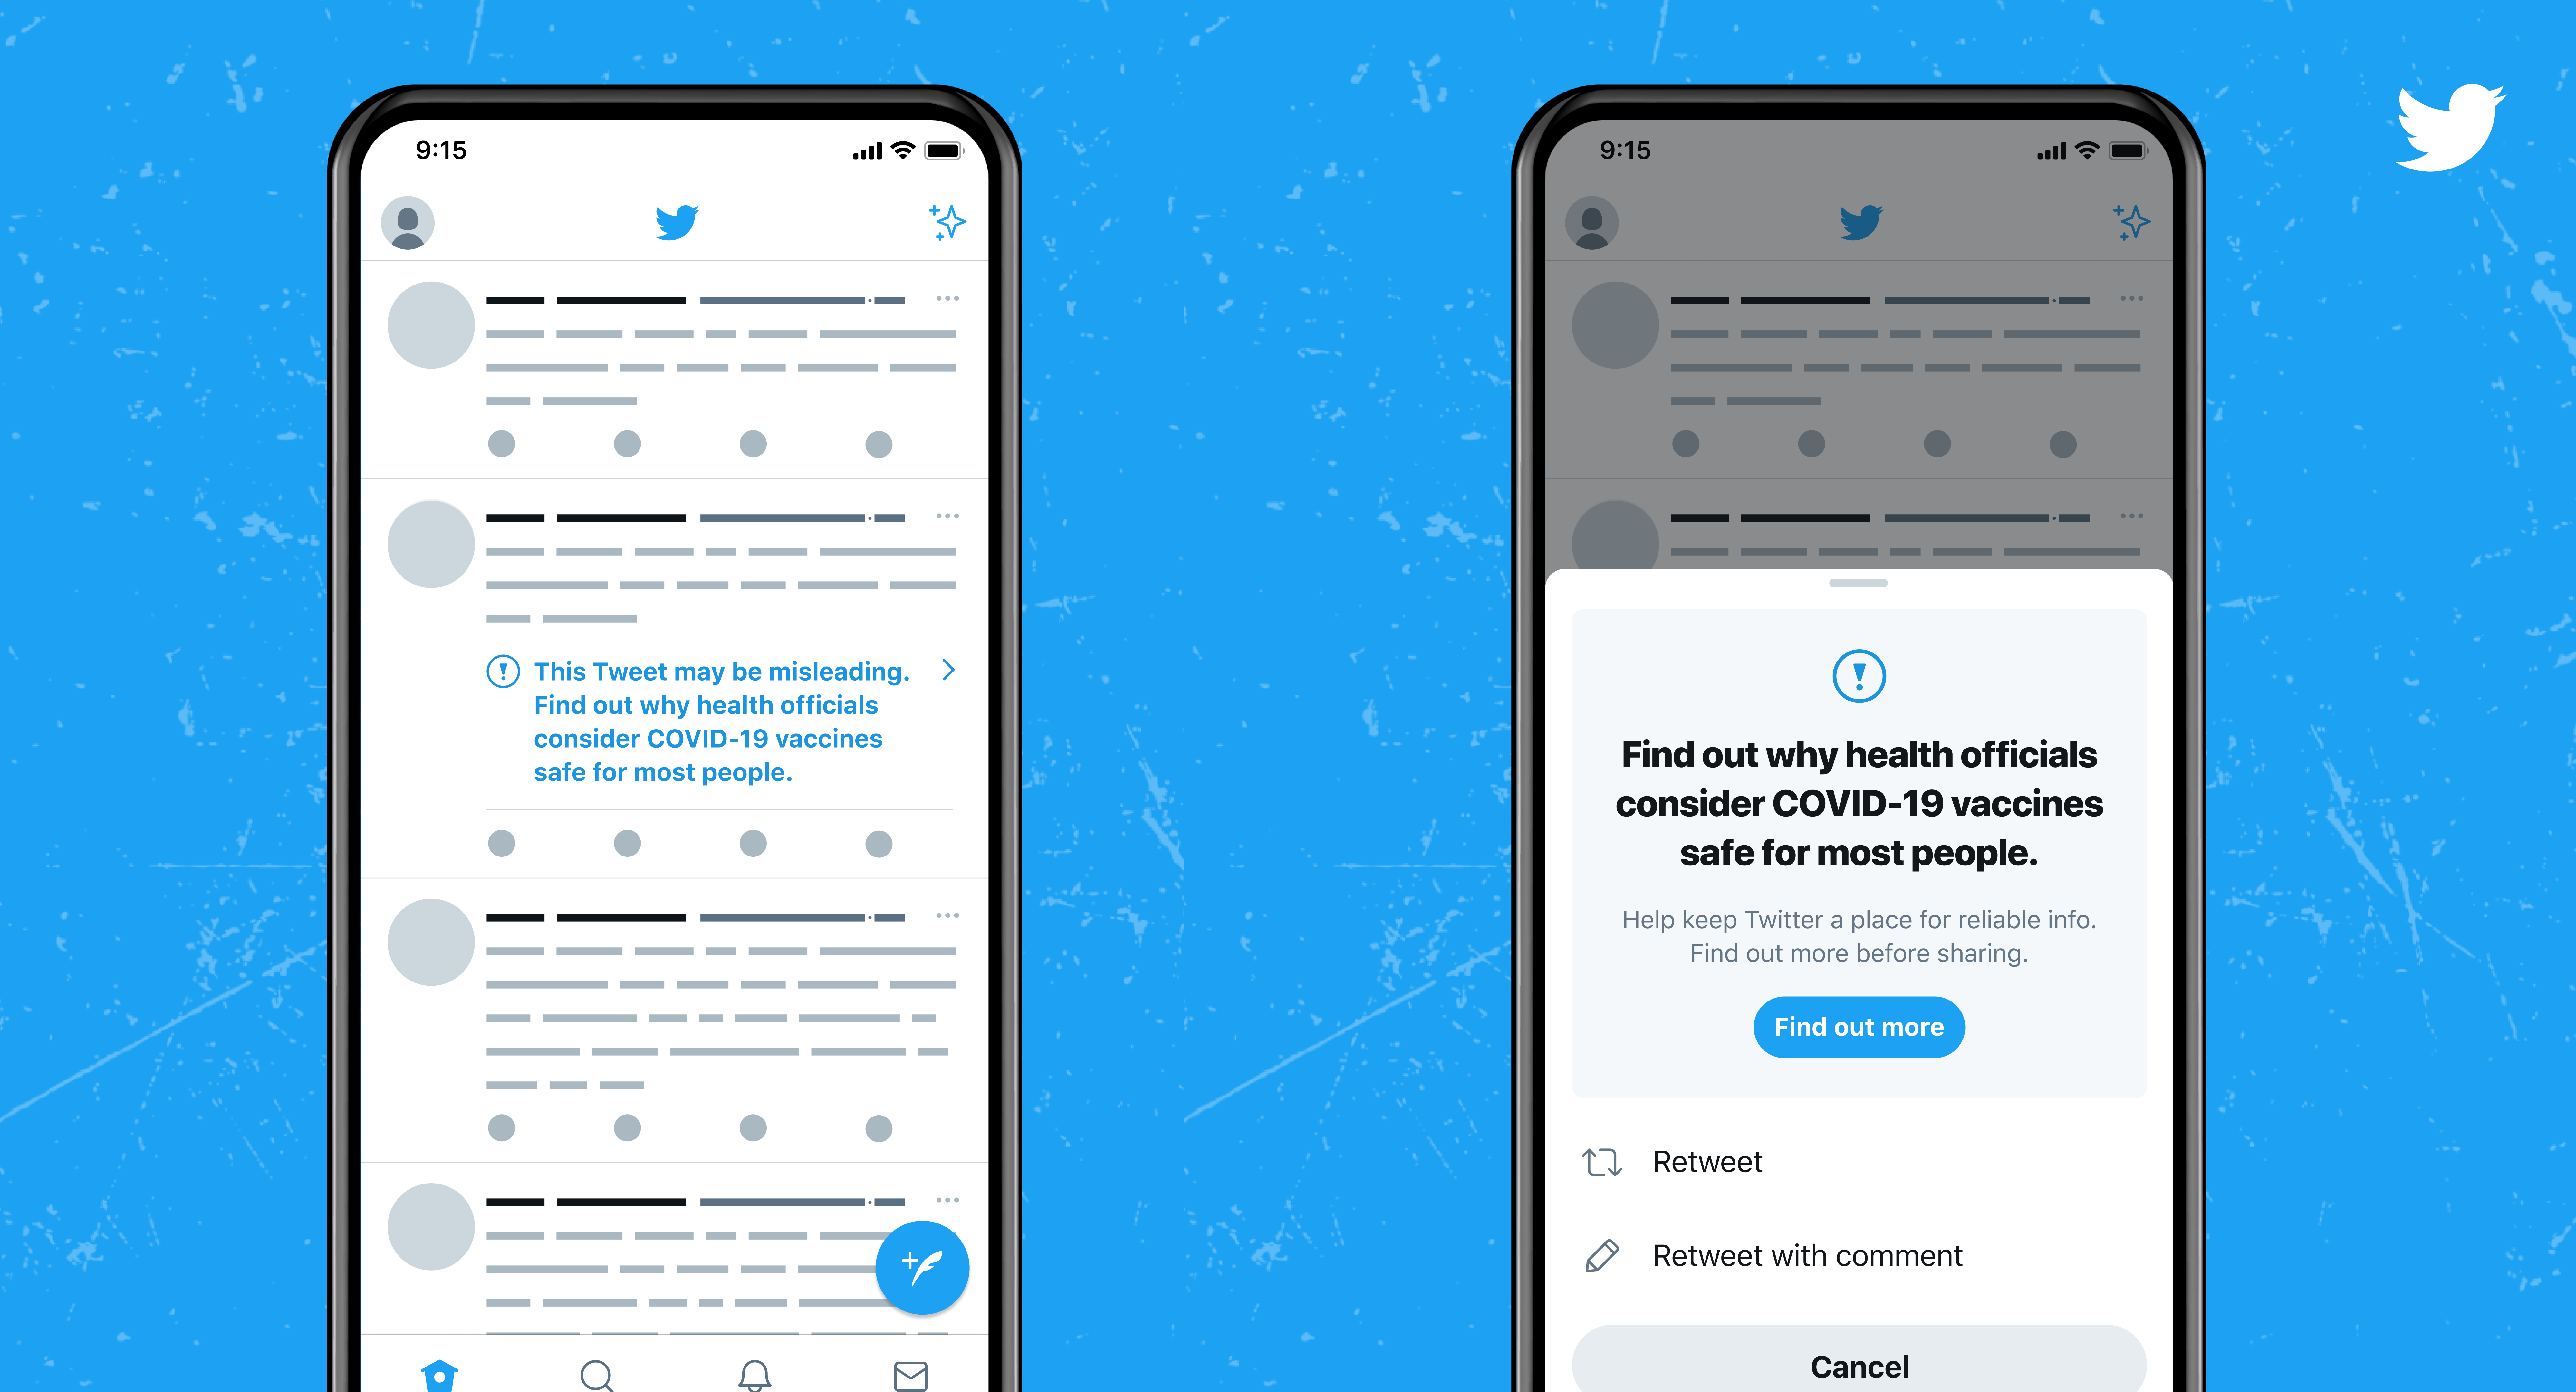 As the distribution of COVID-19 vaccines expands, people continue to turn to Twitter to find the latest authoritative public health information. Continuing its efforts to remove harmful and misleading information from the platform